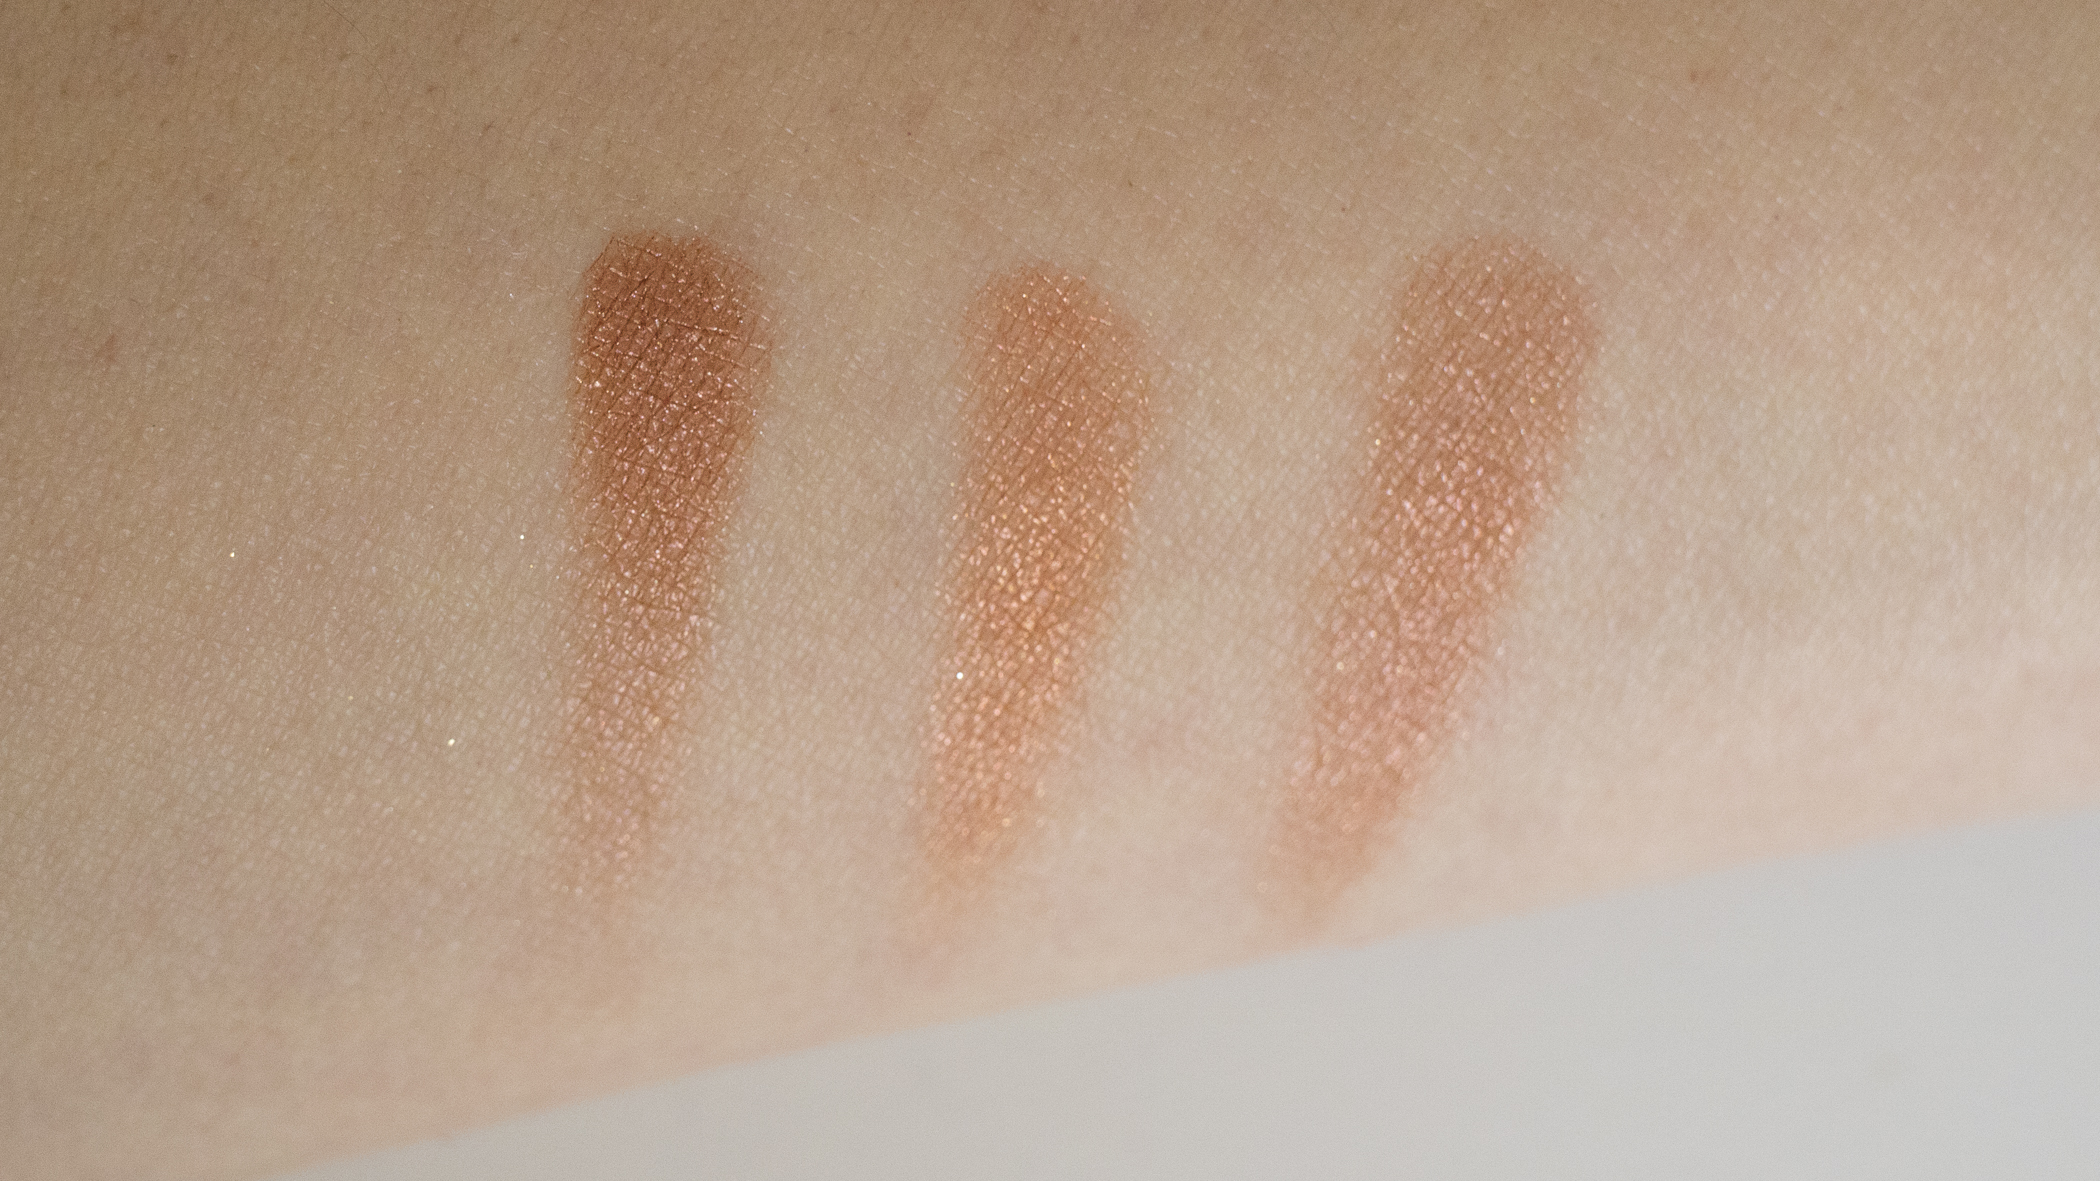 From L to R: Petit Pro, Sultry Muse, Paris Nudes